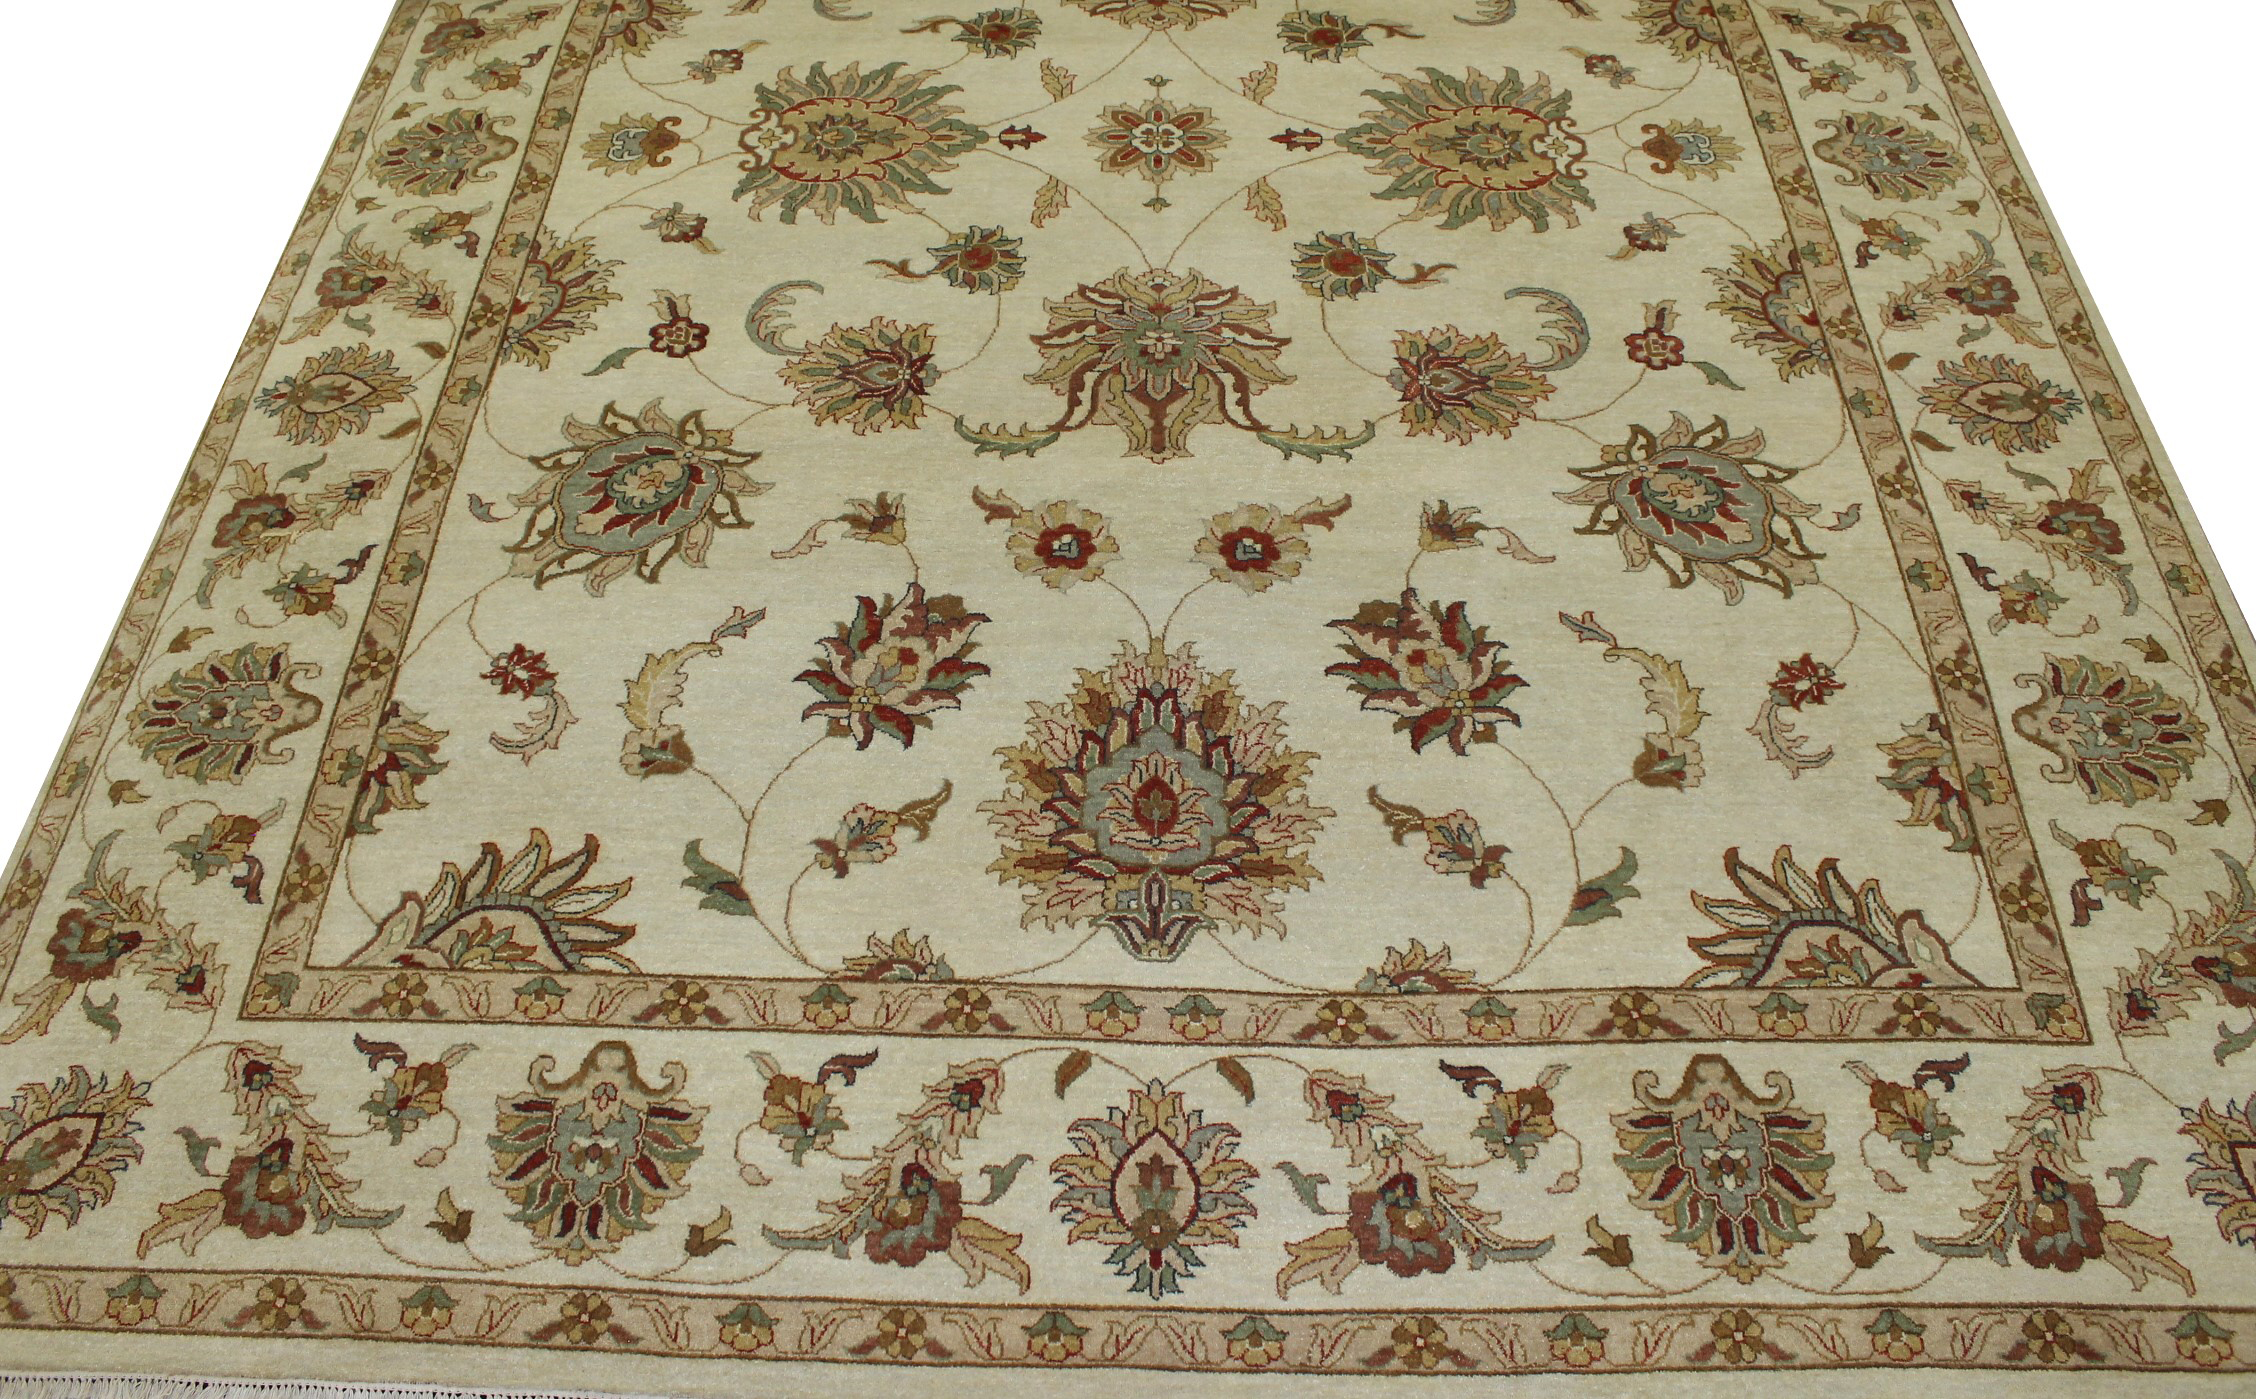 10x14 Traditional Hand Knotted Wool Area Rug - MR15331